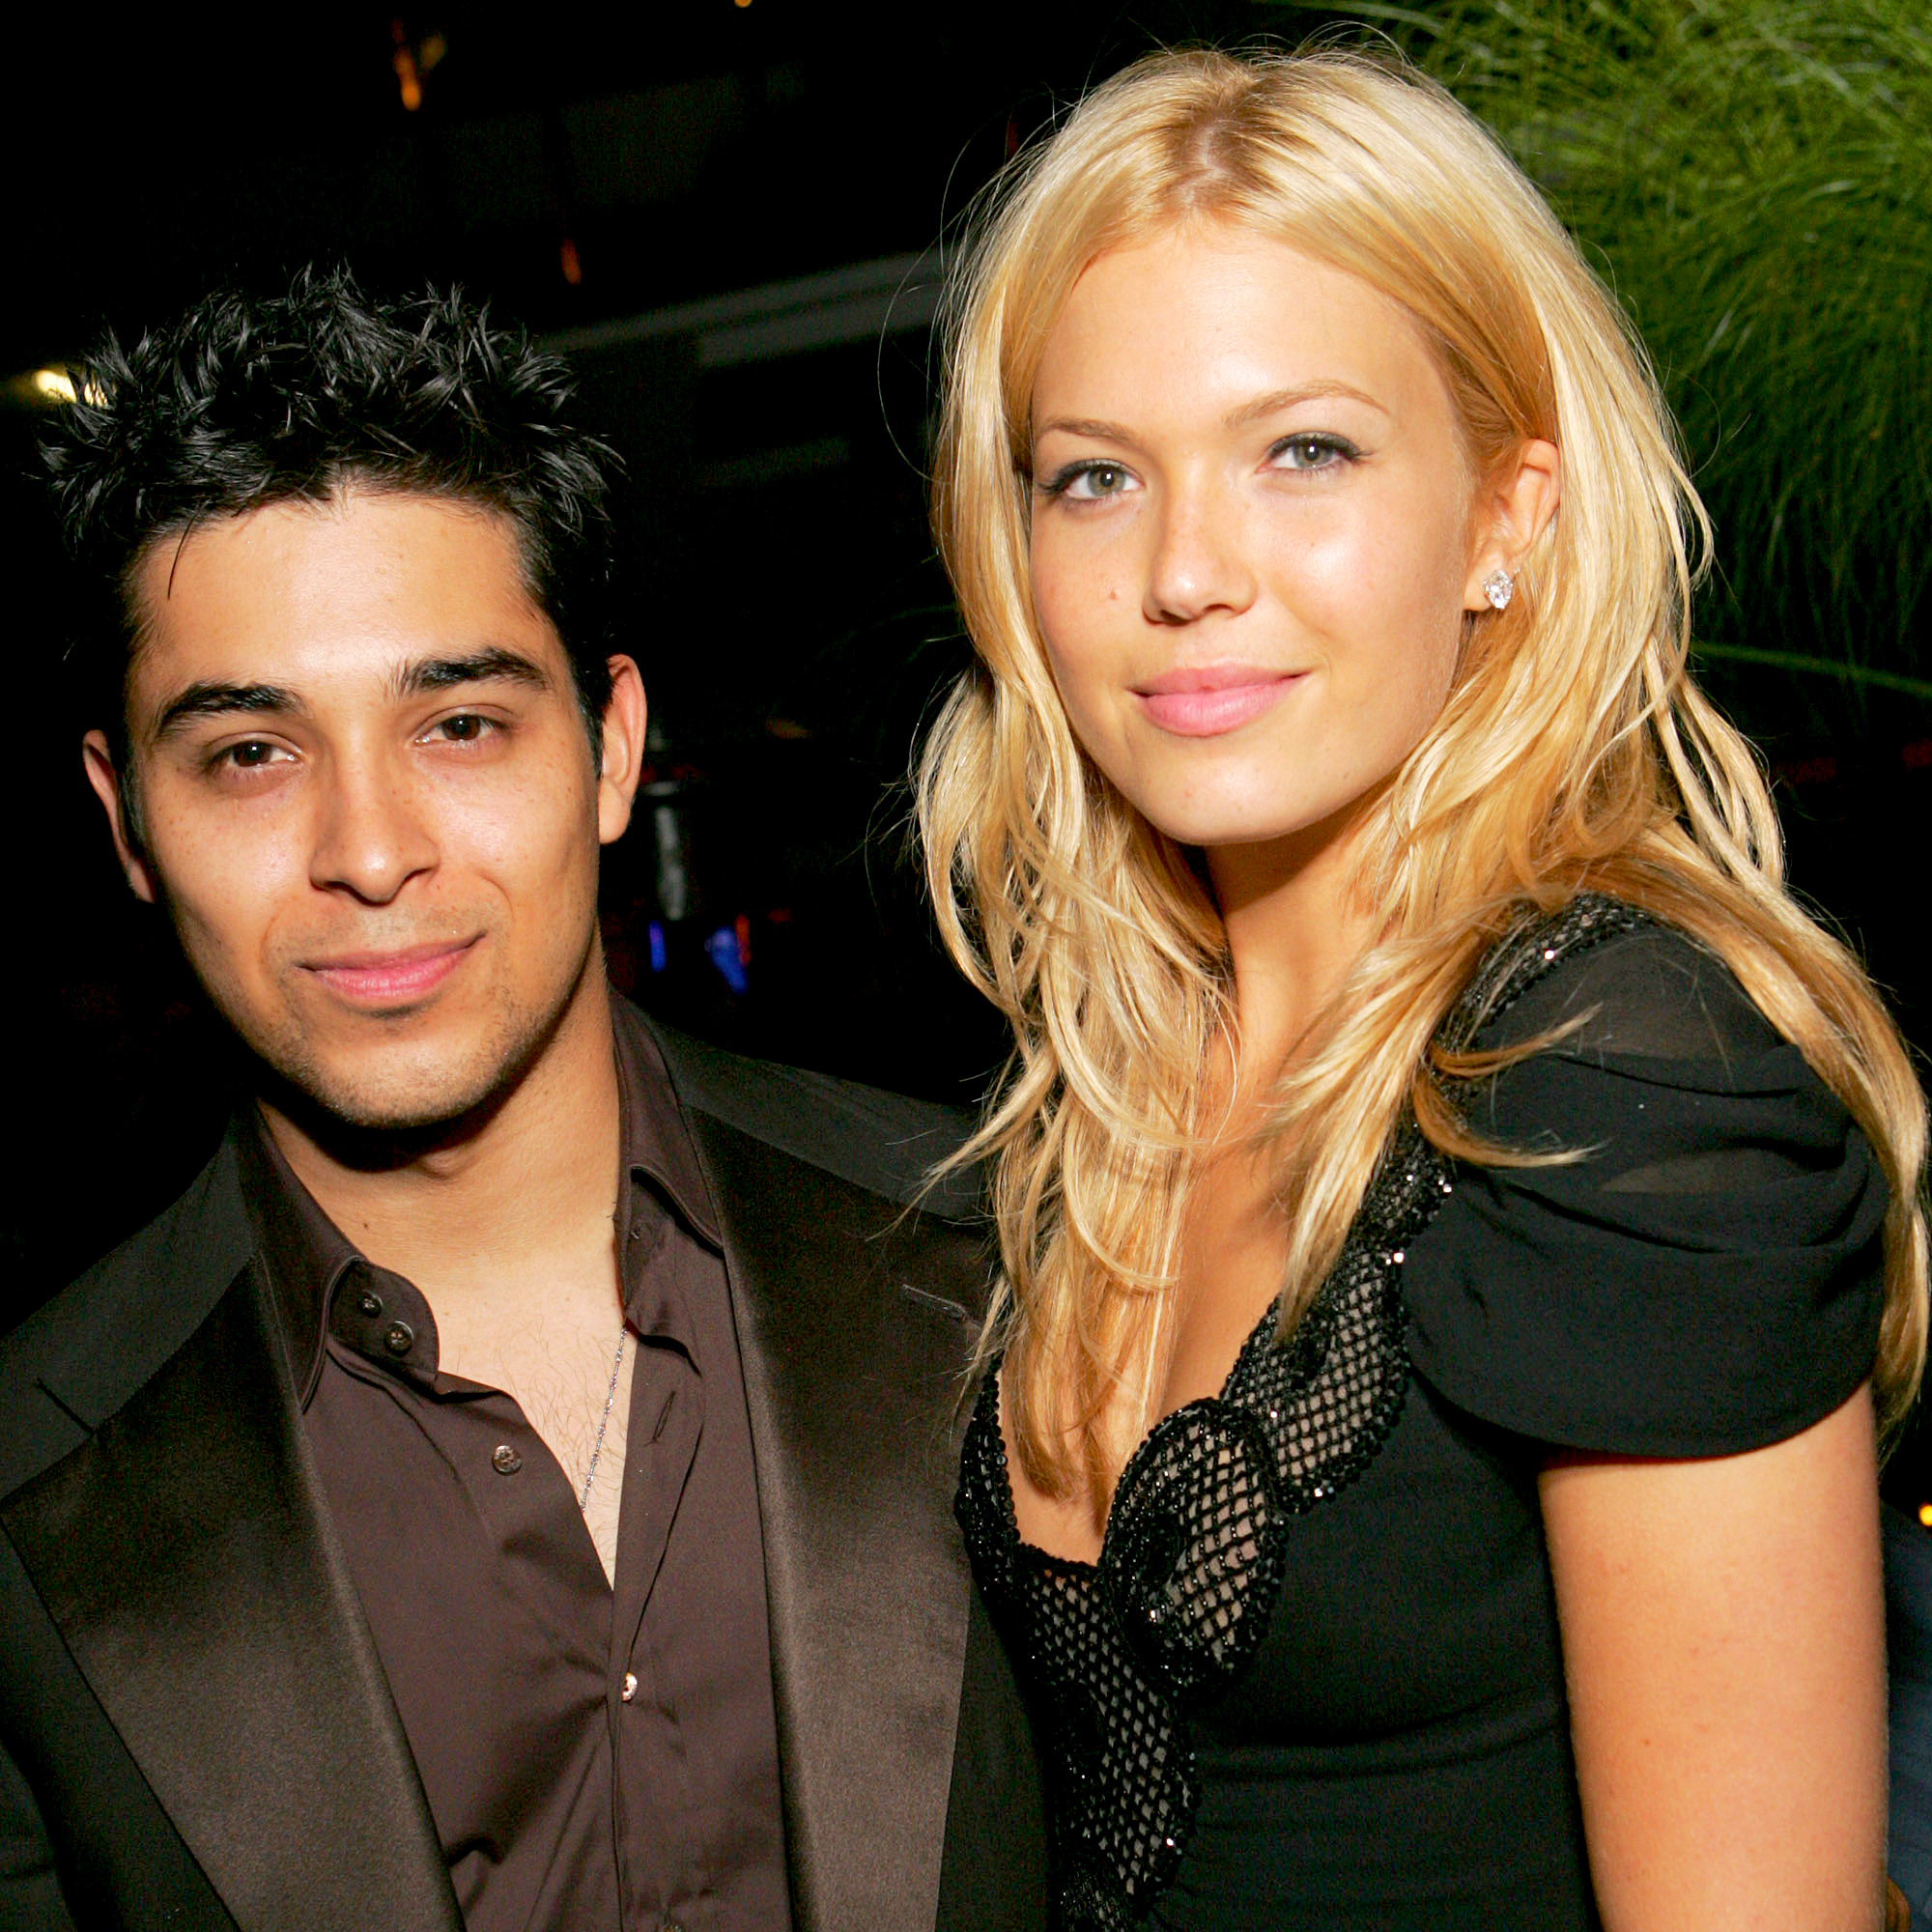 Wilmer Valderrama and Mandy Moore